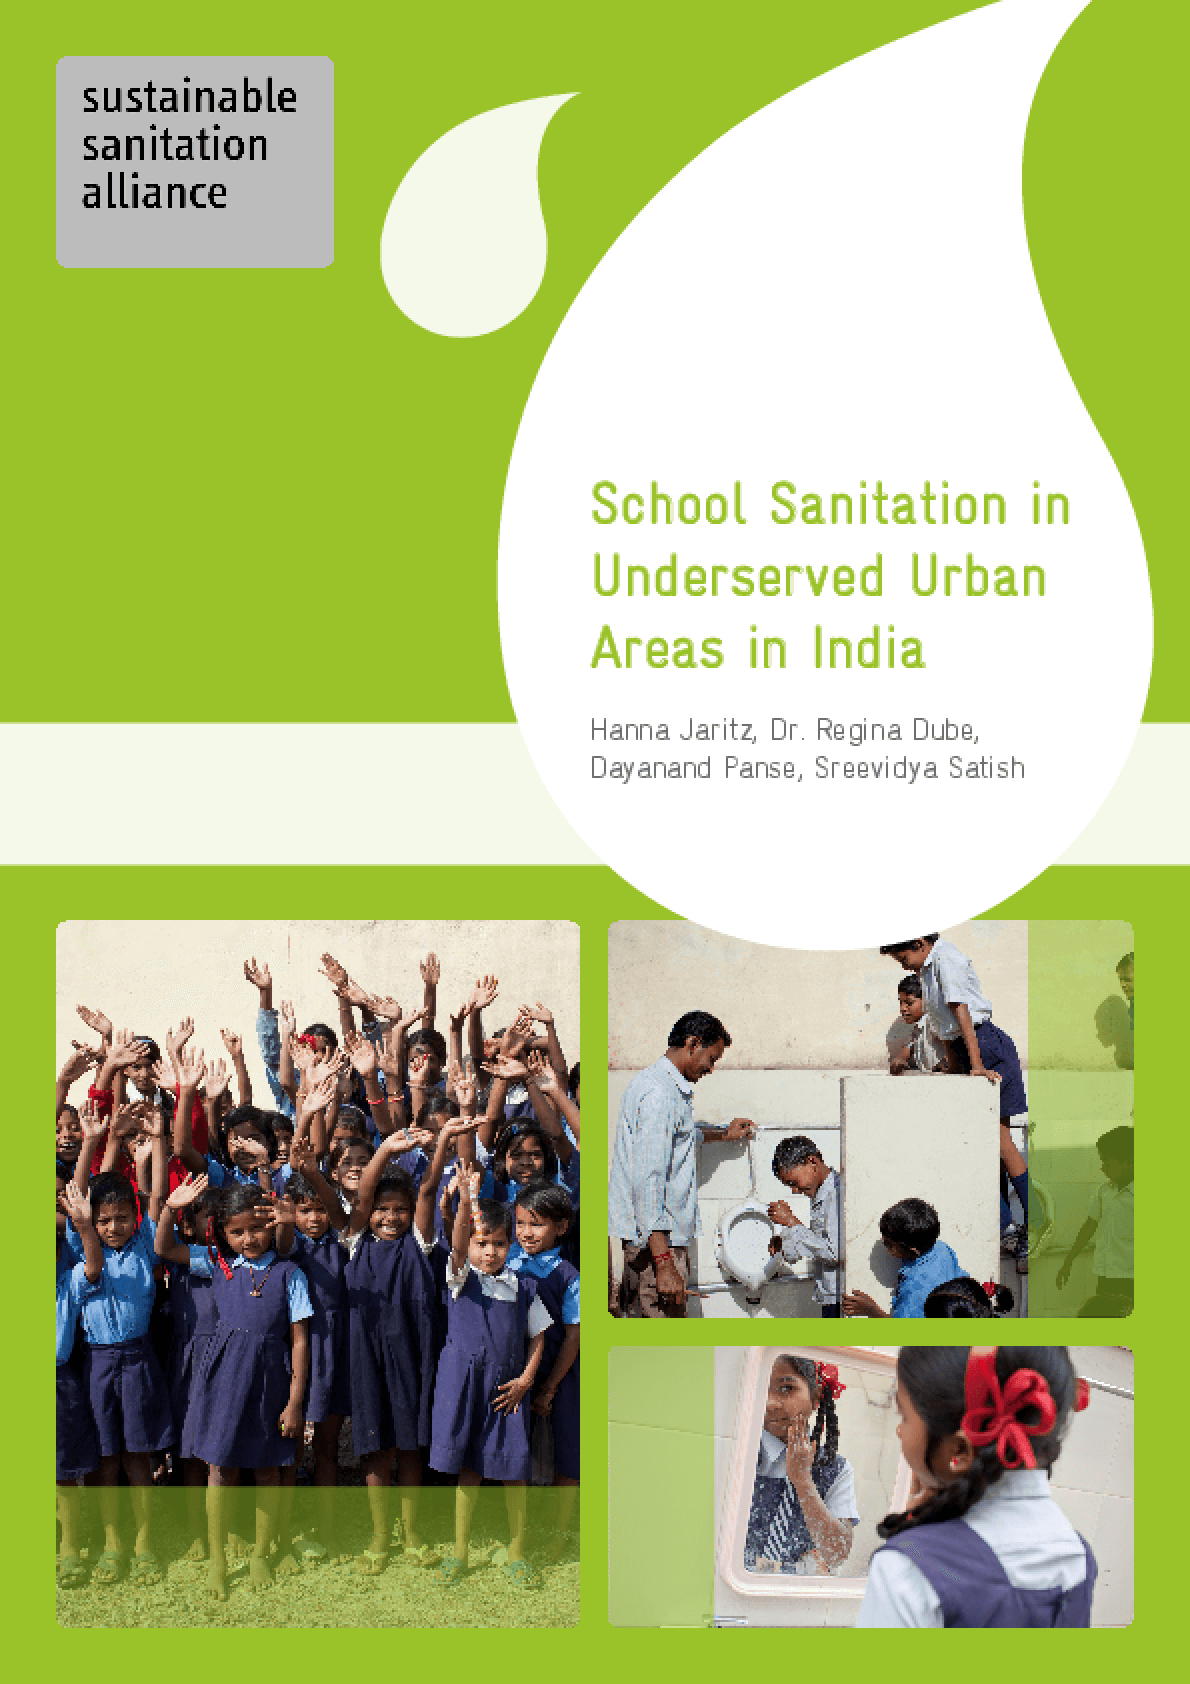 School Sanitation in Underserved Urban Areas in India